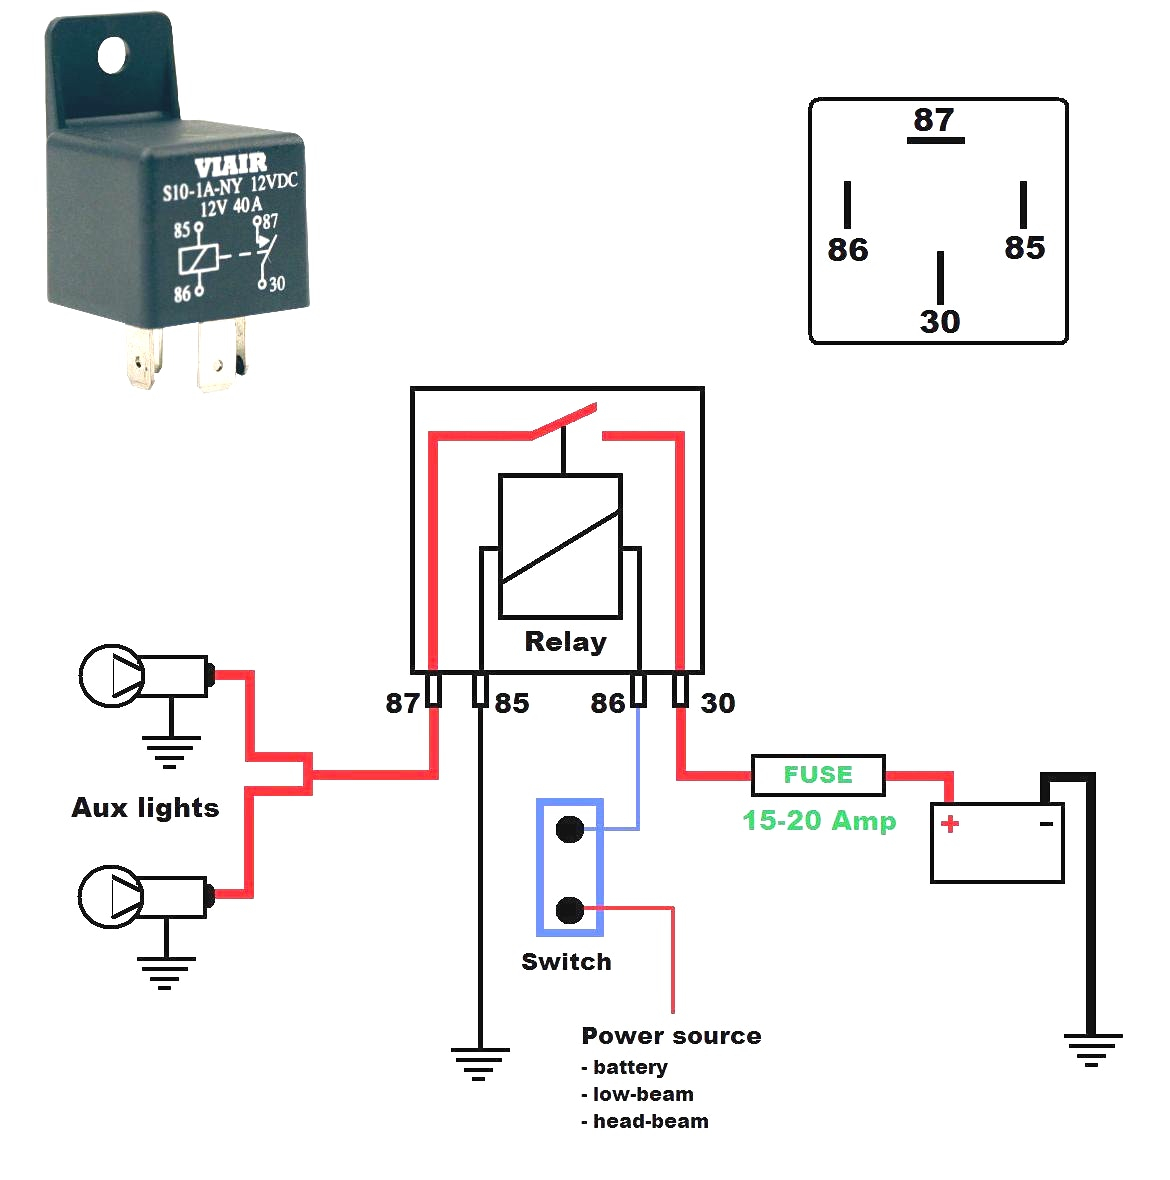 12v Relay Wiring Diagram Spotlights Download | Wiring Diagram Sample